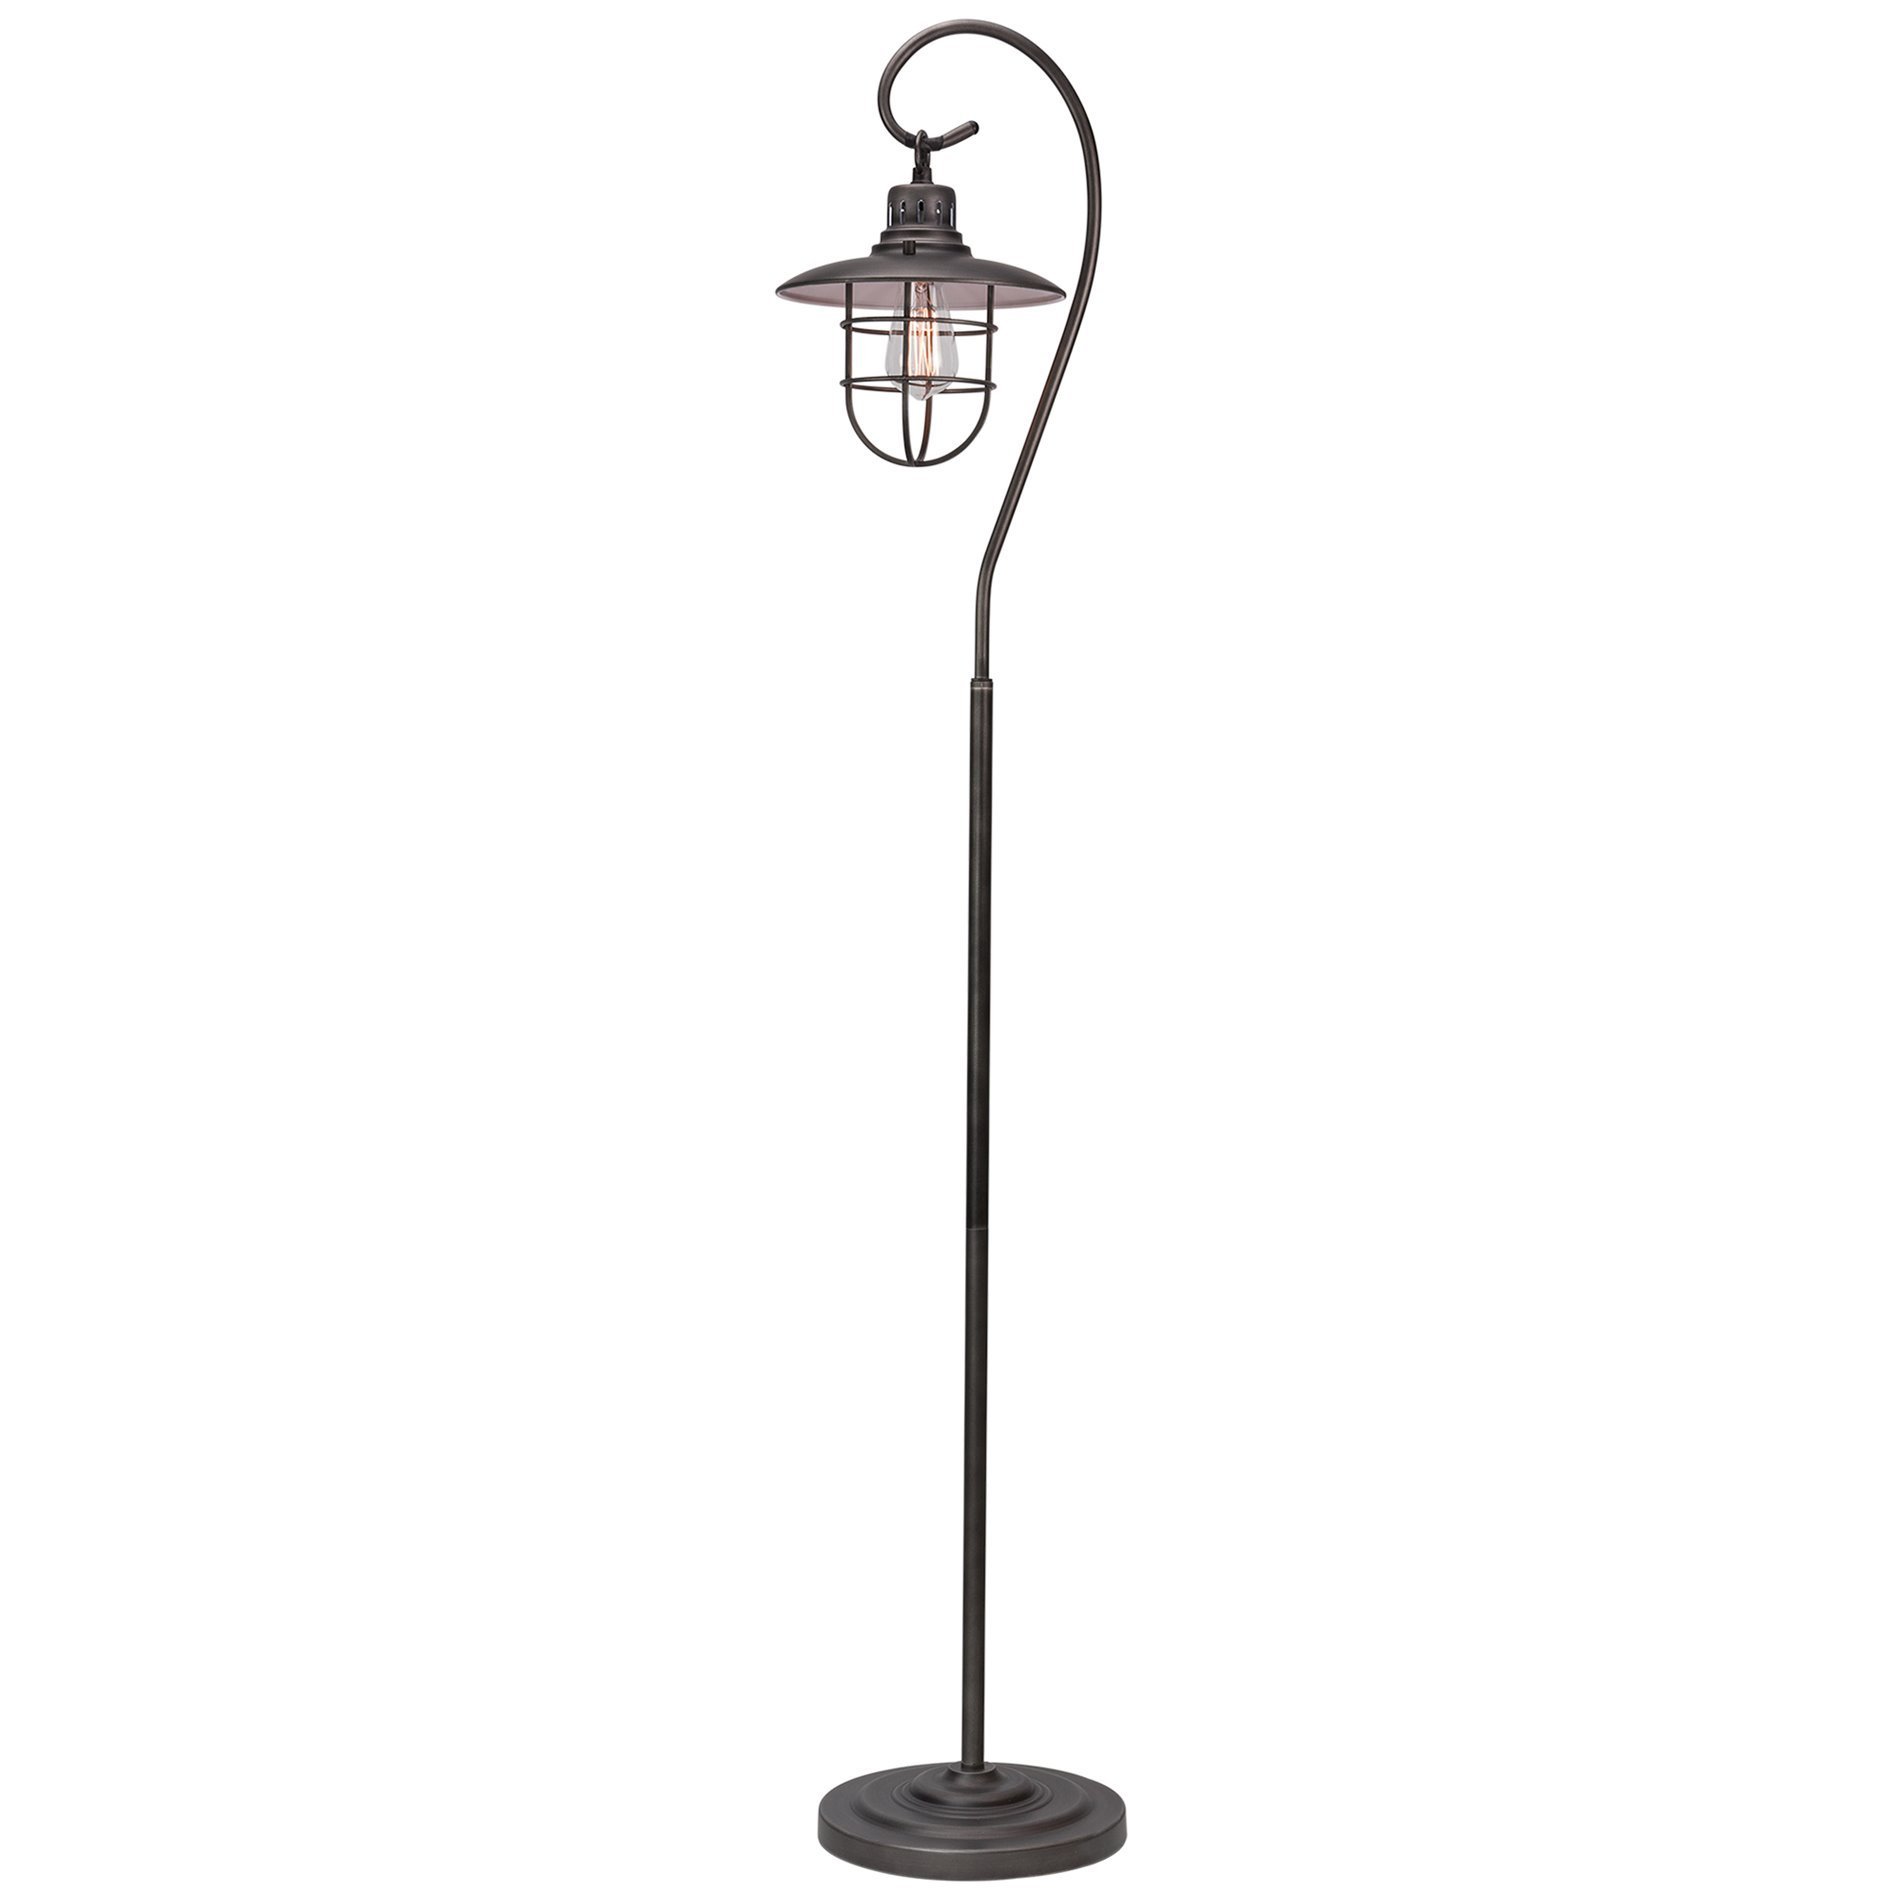 Kira Home Lantern 58'' Industrial Floor Lamp + Hanging Shade Design + Cage, Brushed Pewter Finish